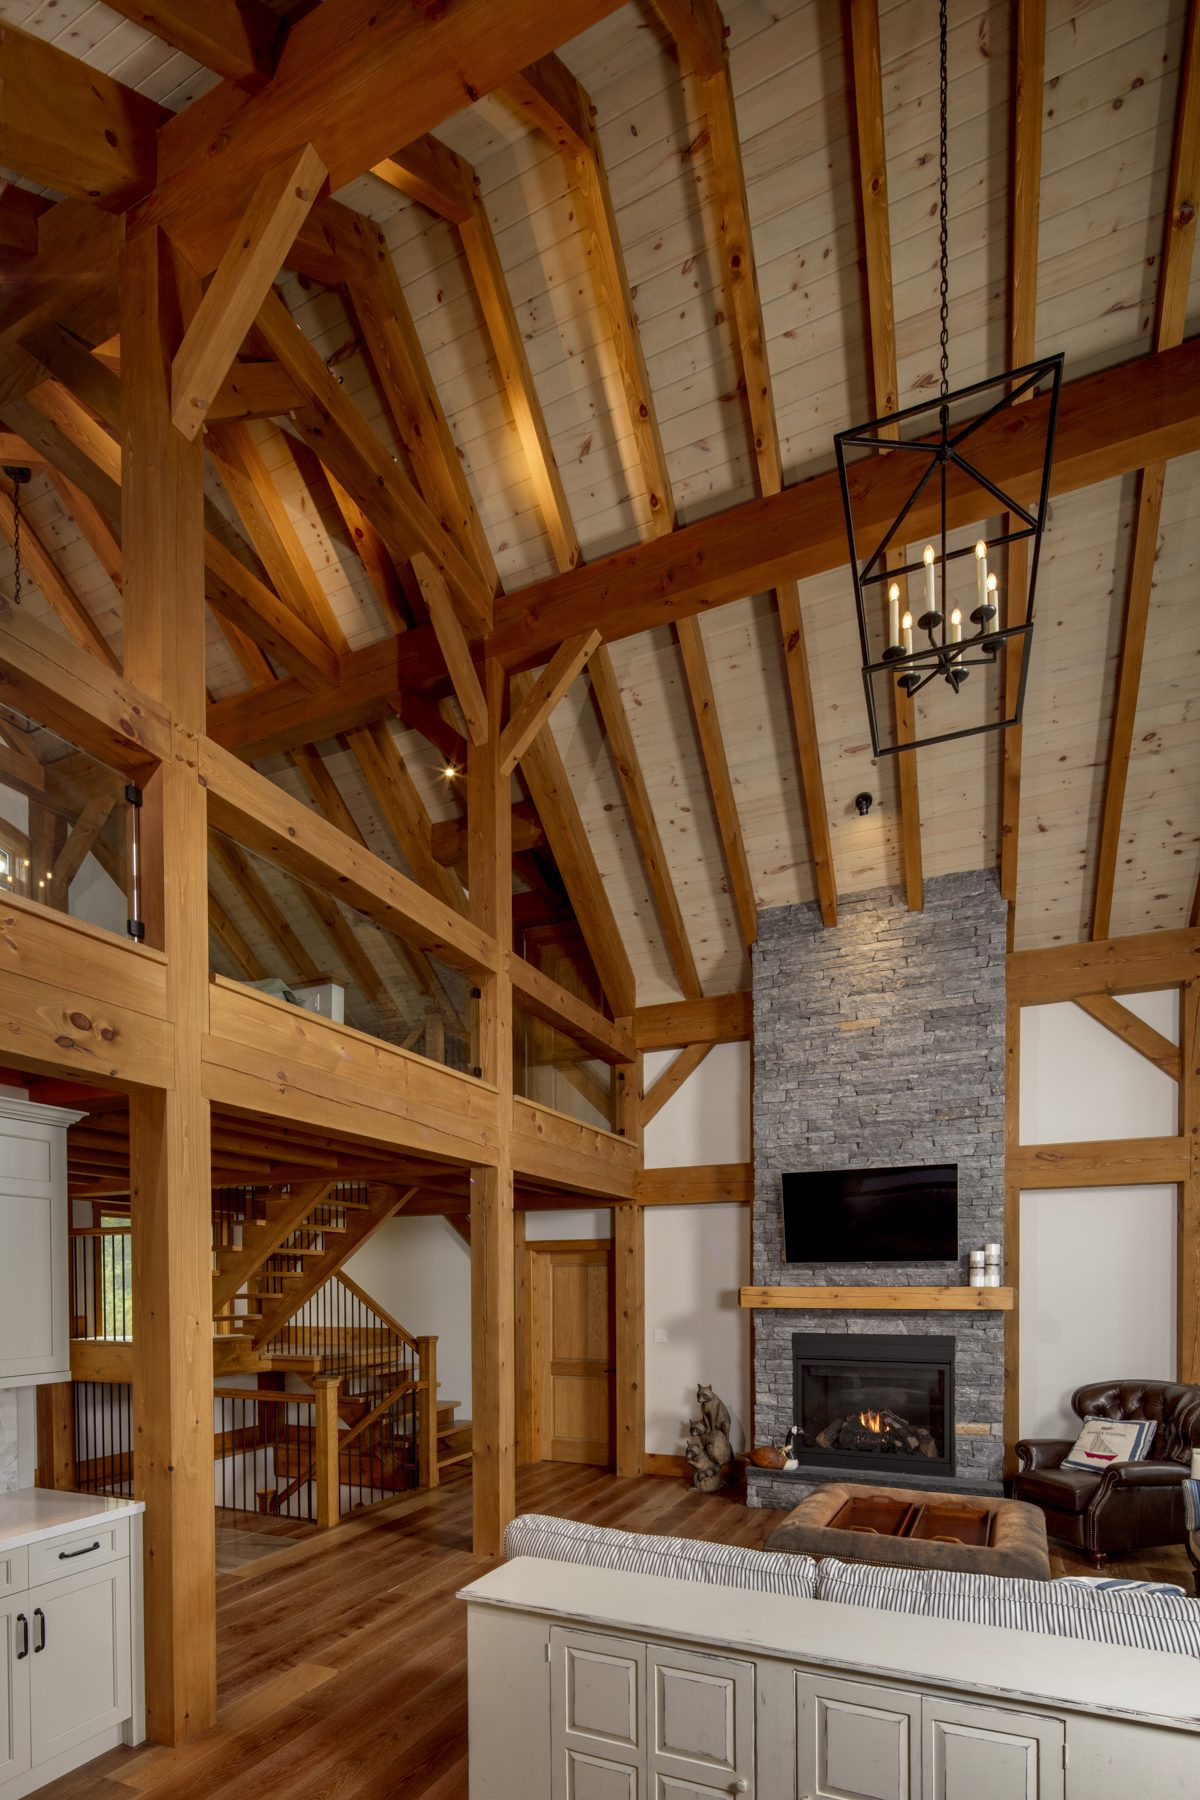 Normerica Timber Frame, Interior, Cottage, Living Room, Great Room, Fireplace, Open Concept, Cathedral Ceiling